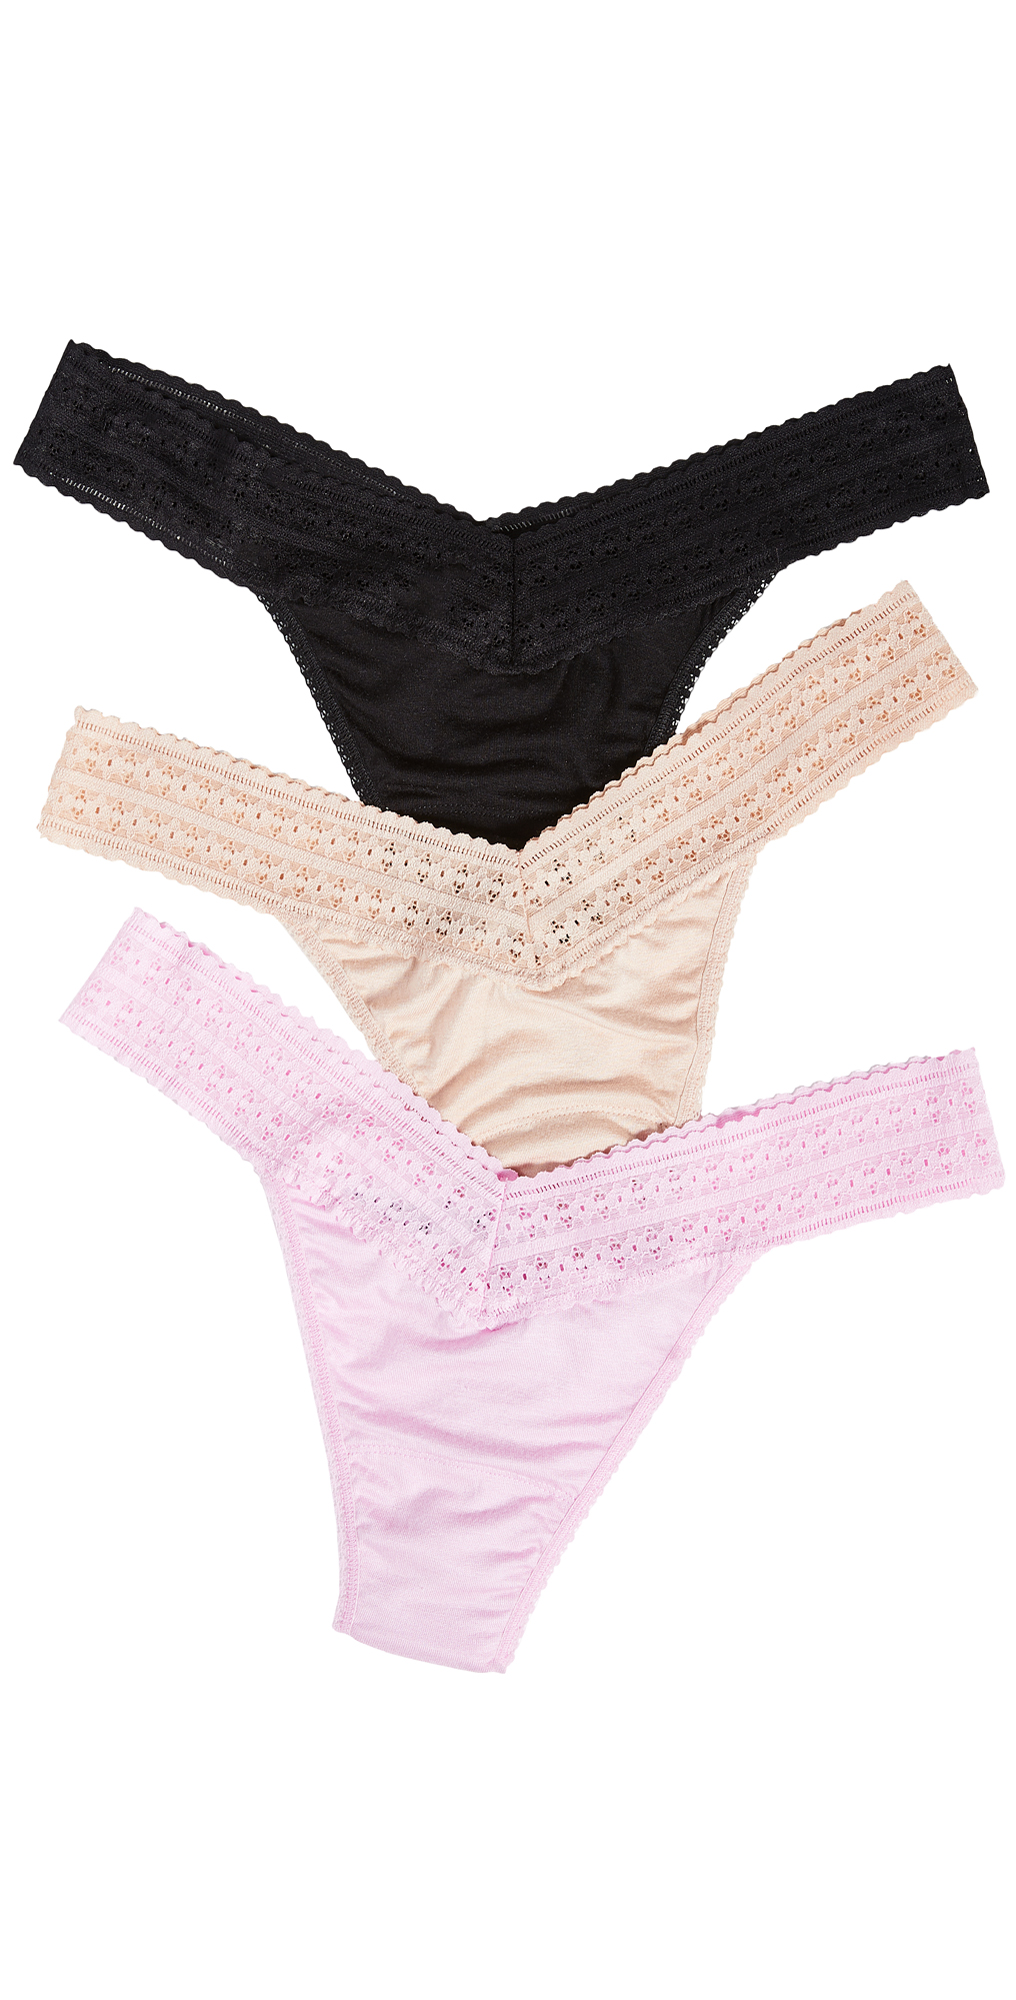 Hanky Panky Dream Original Rise Thongs 3 Pack